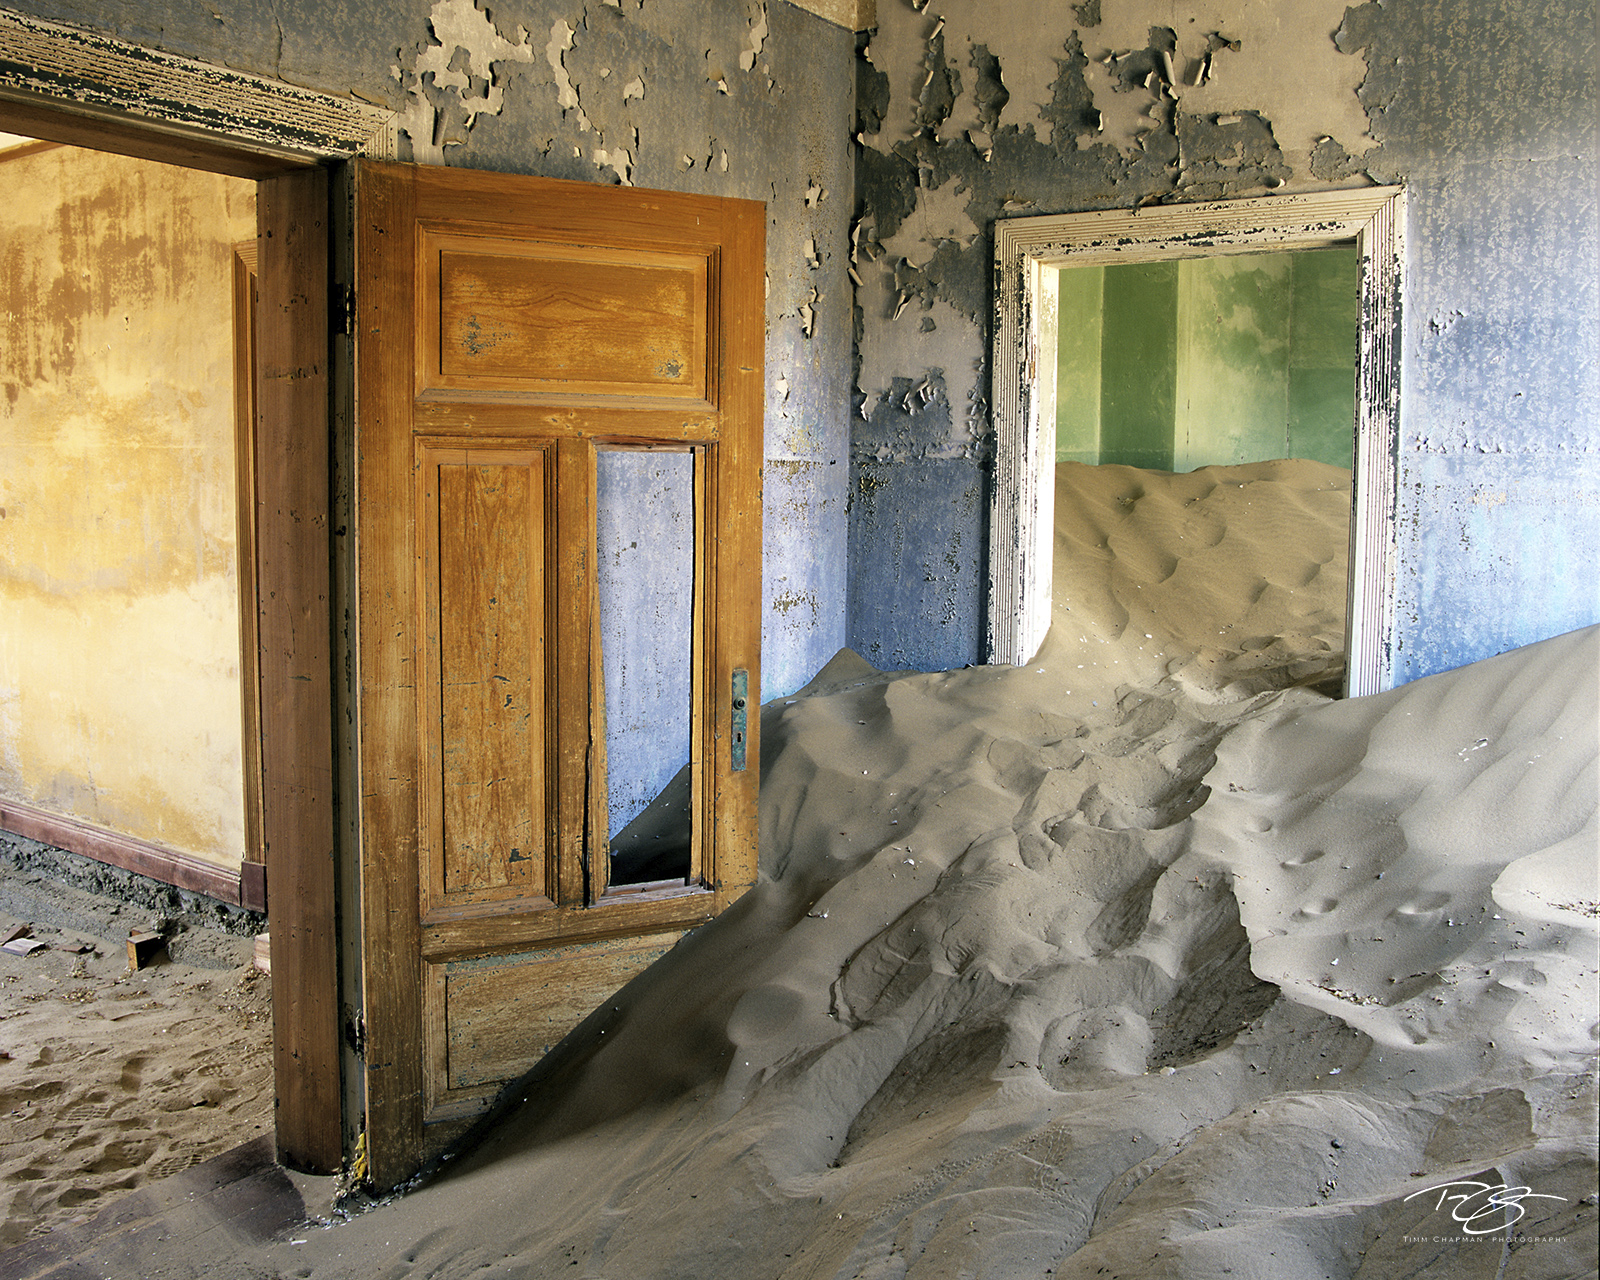 namibia, sands of time, namib desert, desert, sand, doors, door, doorway, dunes, ghost town, kolmanskop, kolmanskuppe, luderitz, abandoned, town, diamond mining, flooded, homes, home, peeling paint, photo